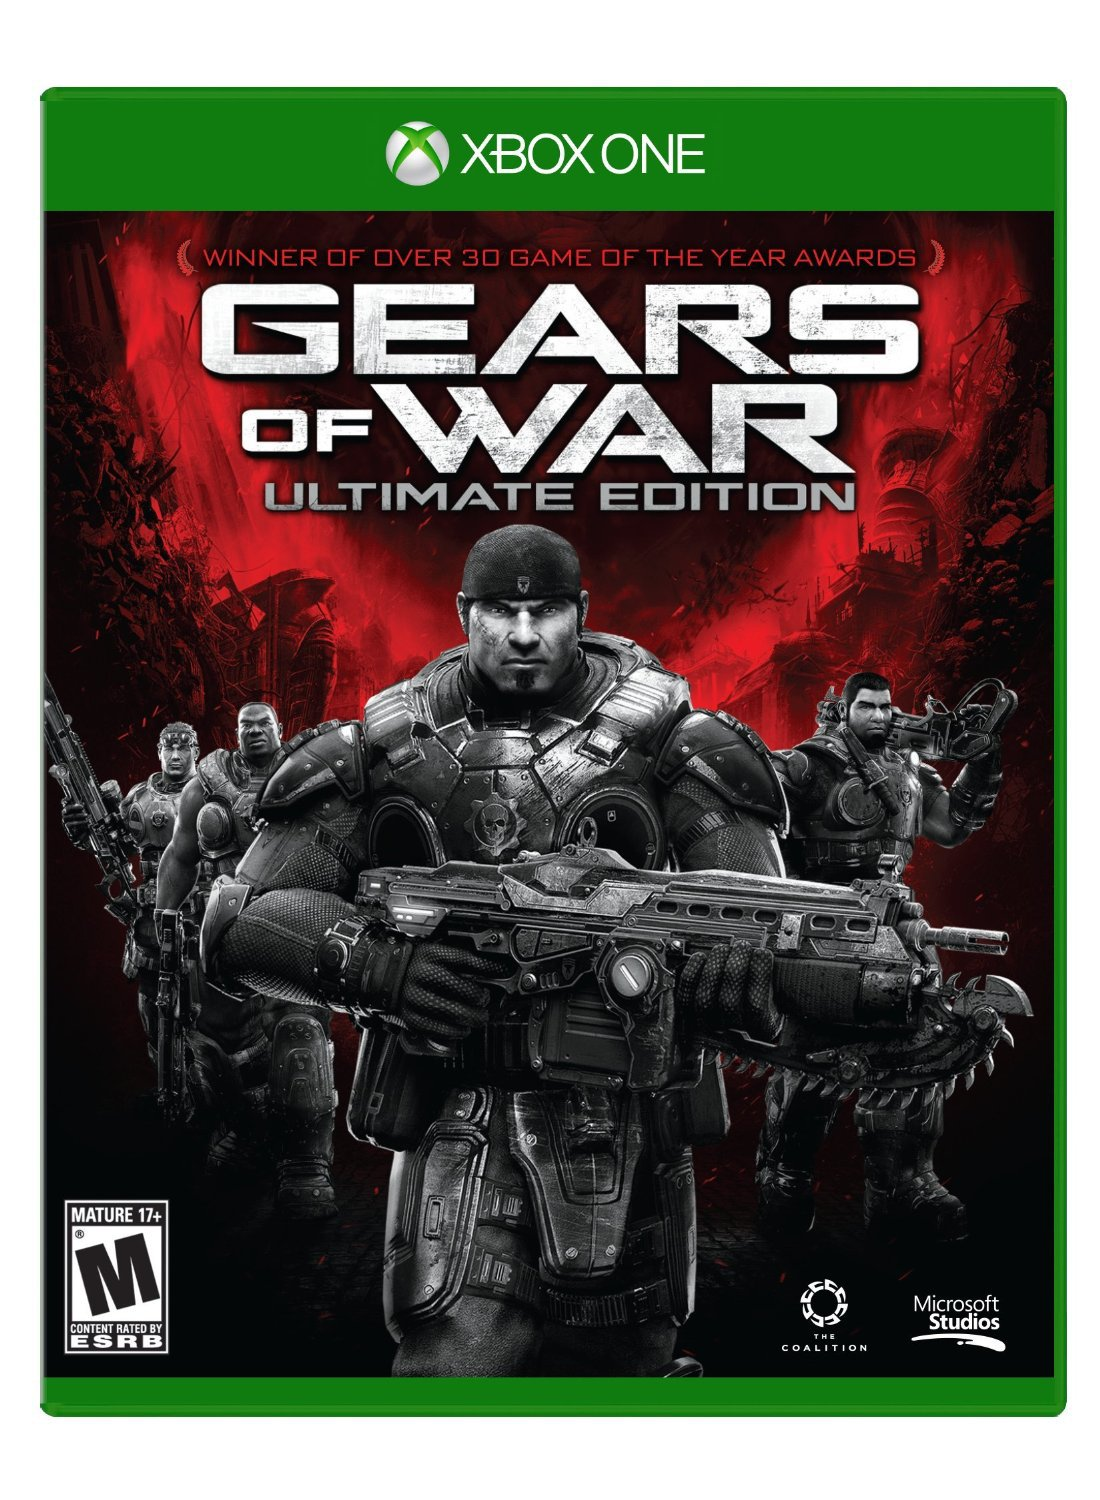 Gears of War Ultimate Edition - Multiplayer Game Modes ...